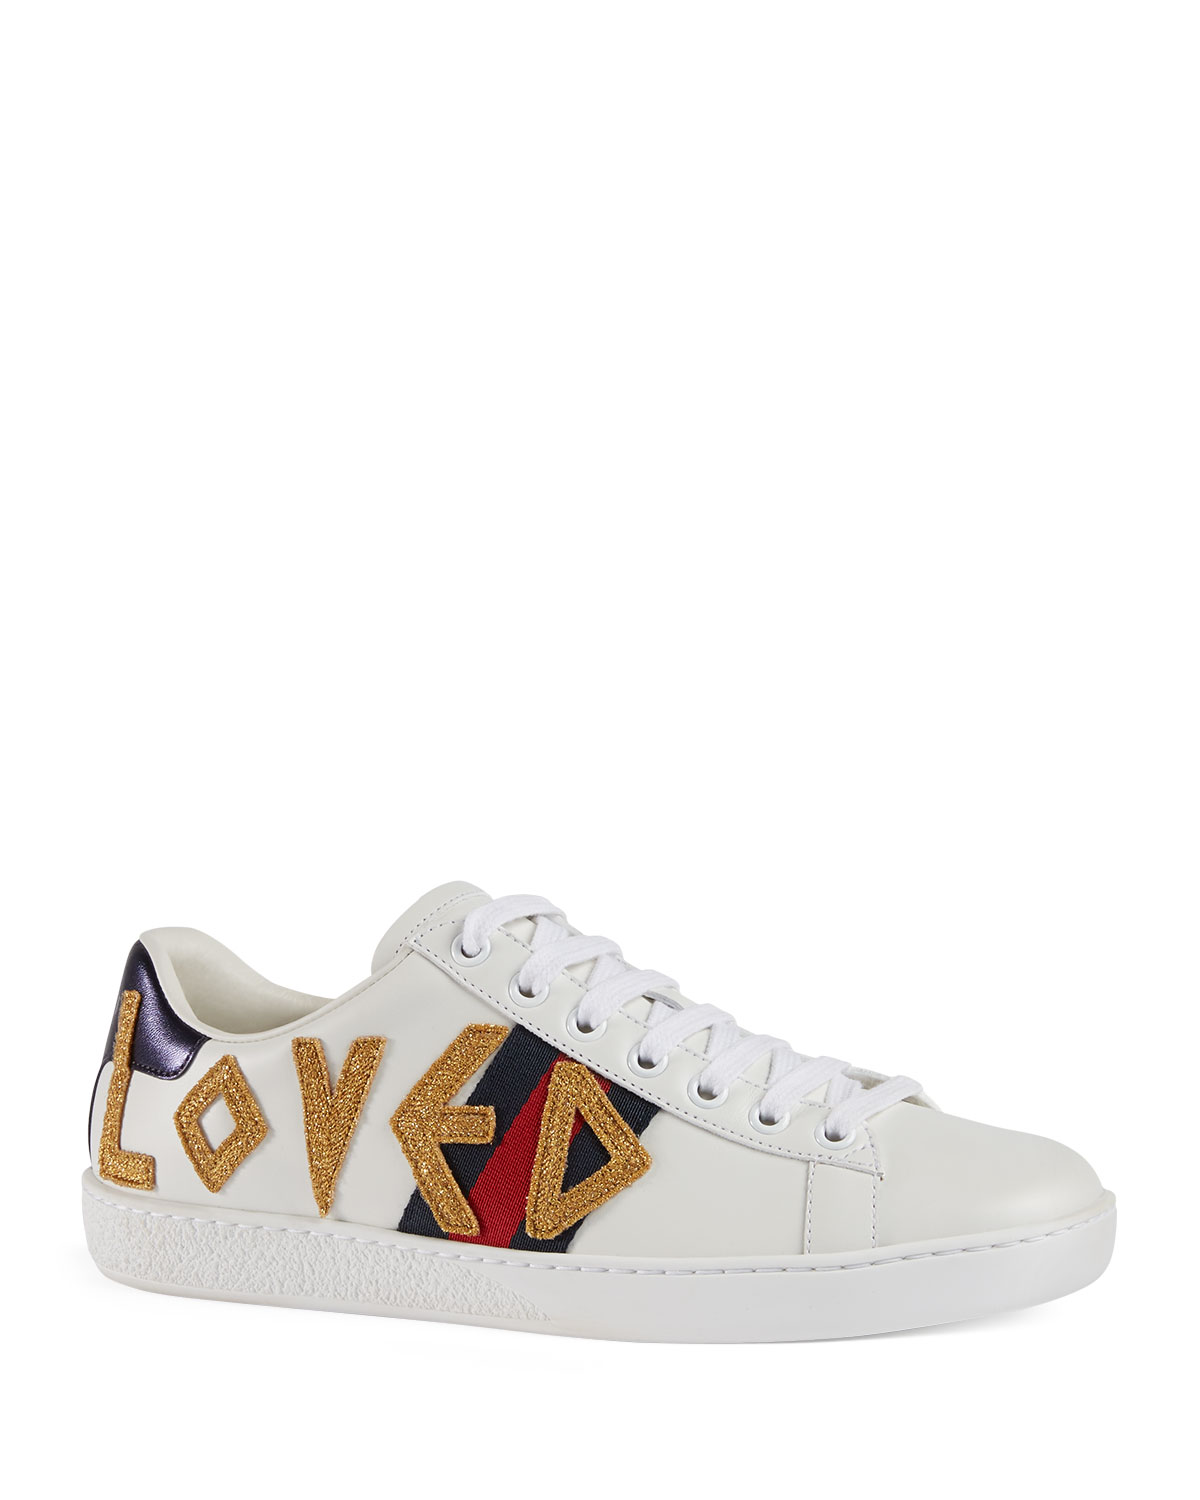 e8028176dcac Embroidered Gucci Shoes | Neiman Marcus